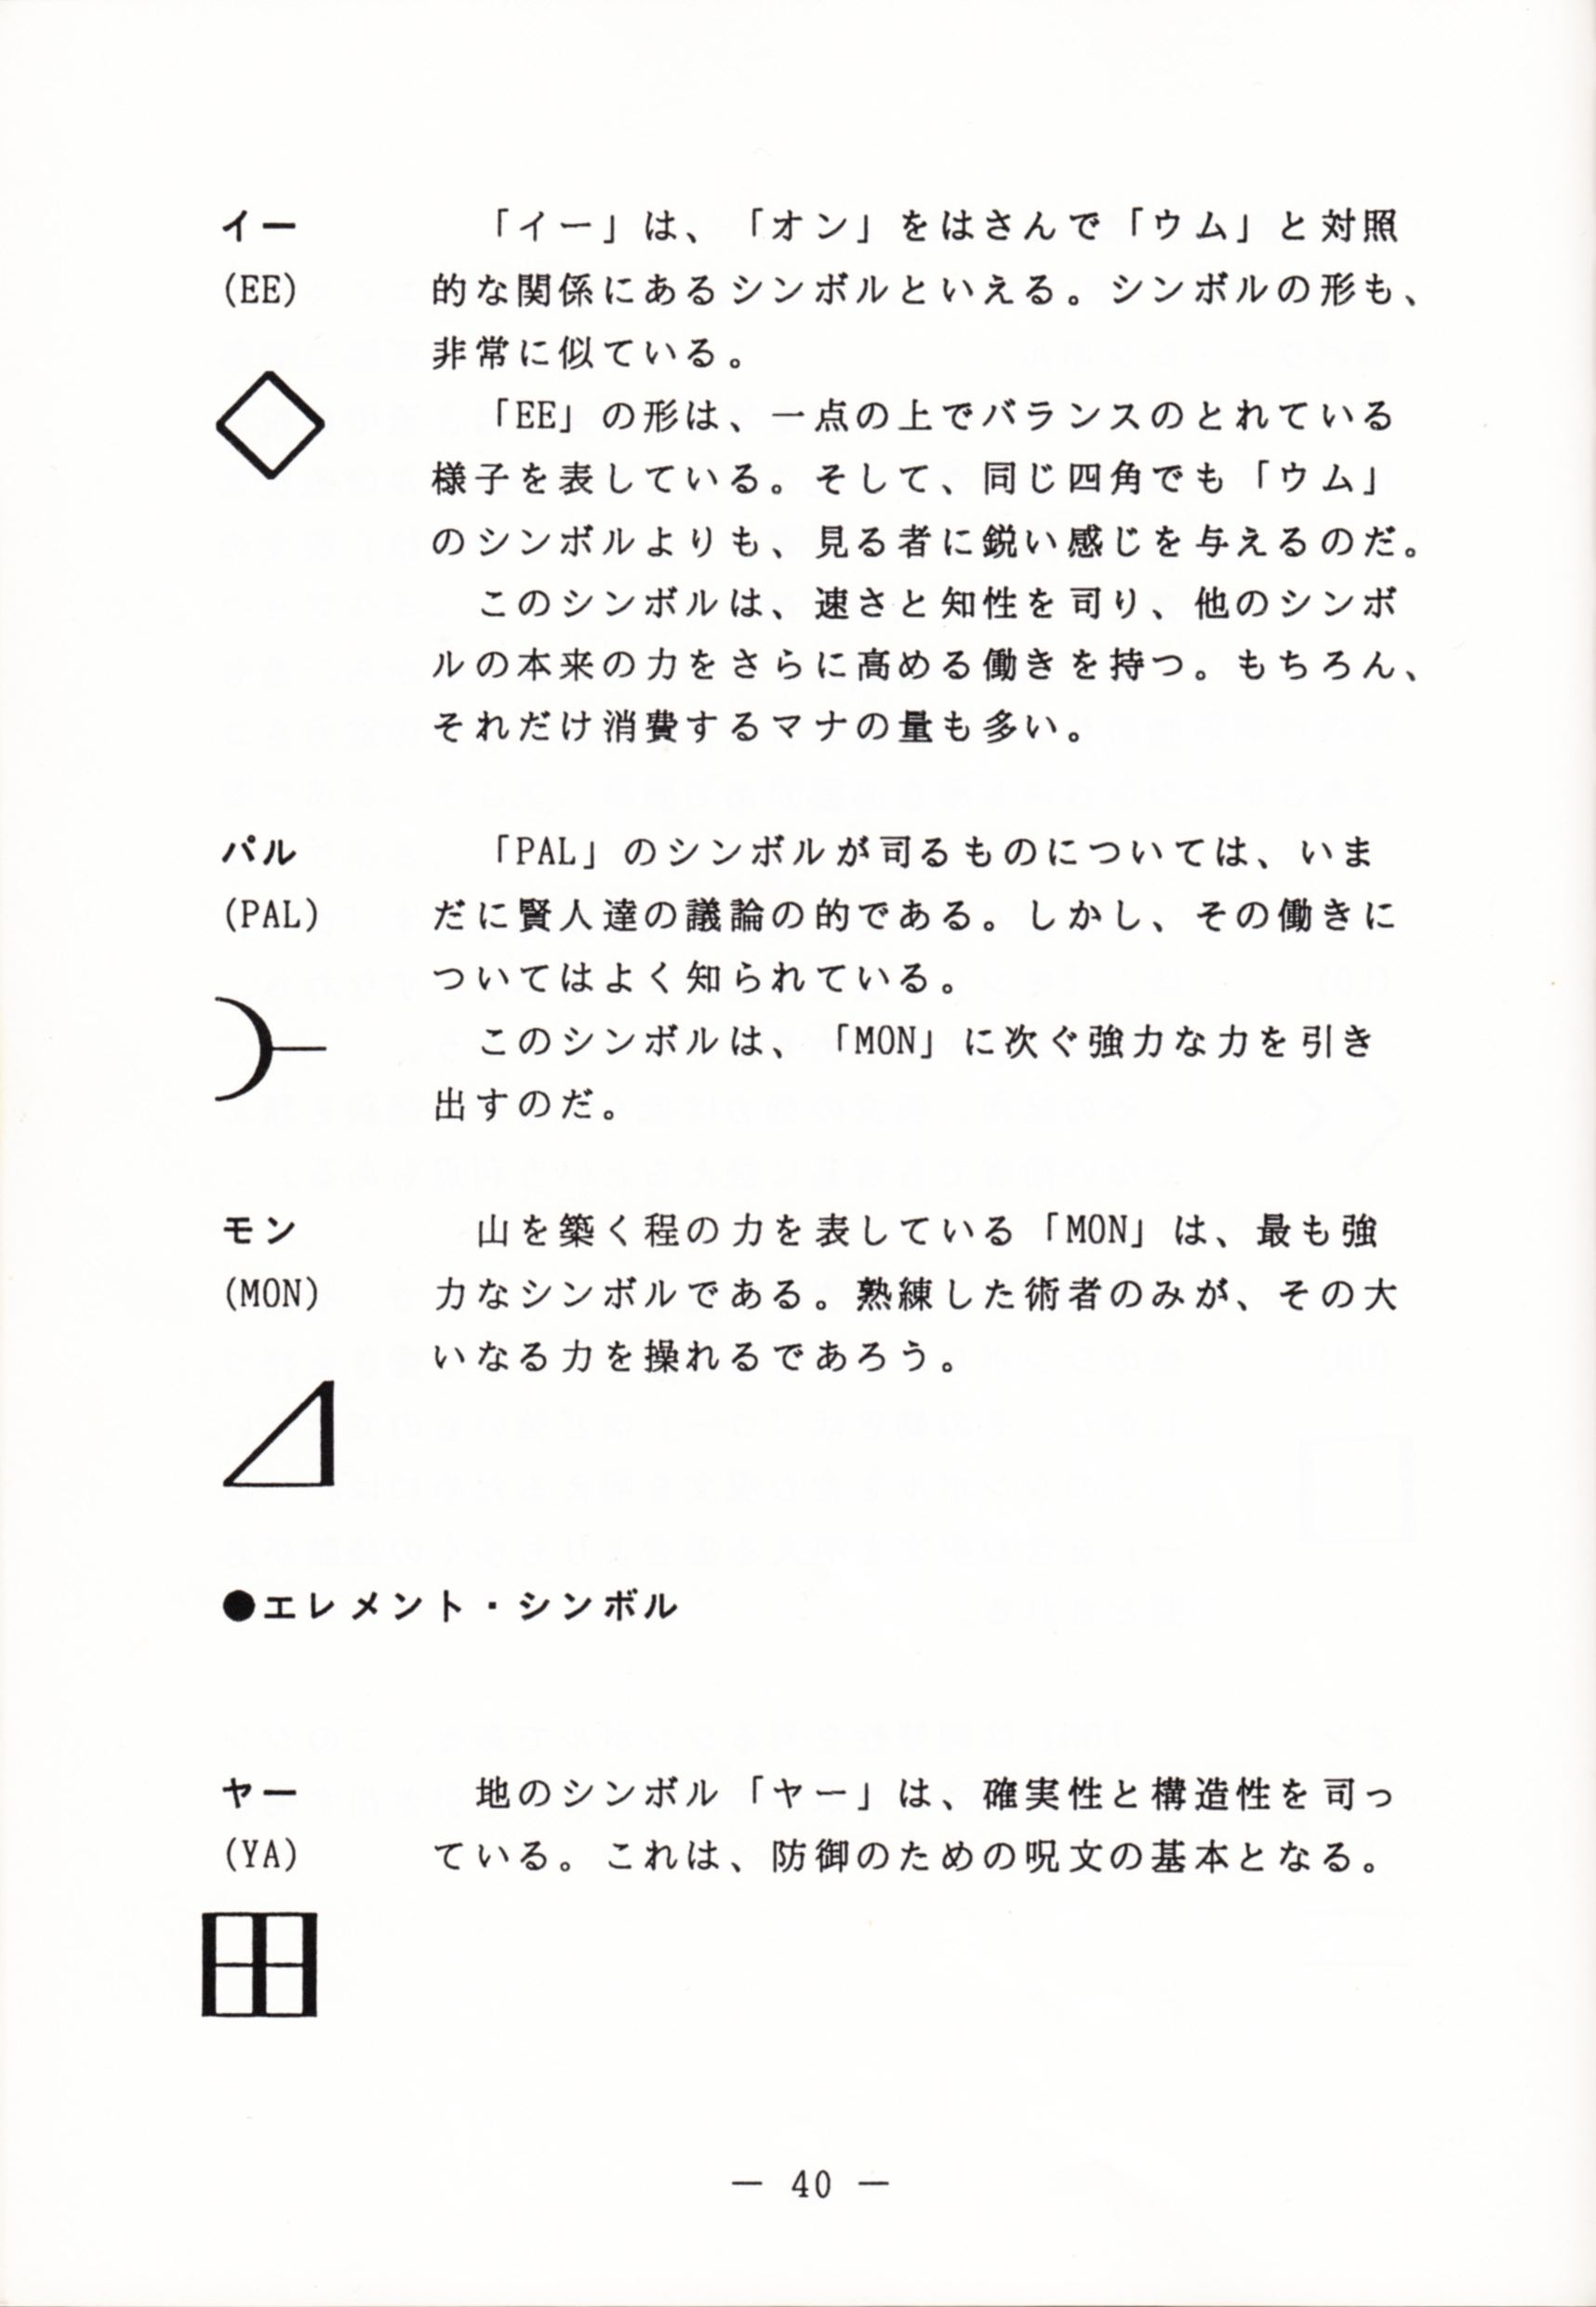 Game - Dungeon Master - JP - FM Towns - Operations Guide - Page 042 - Scan